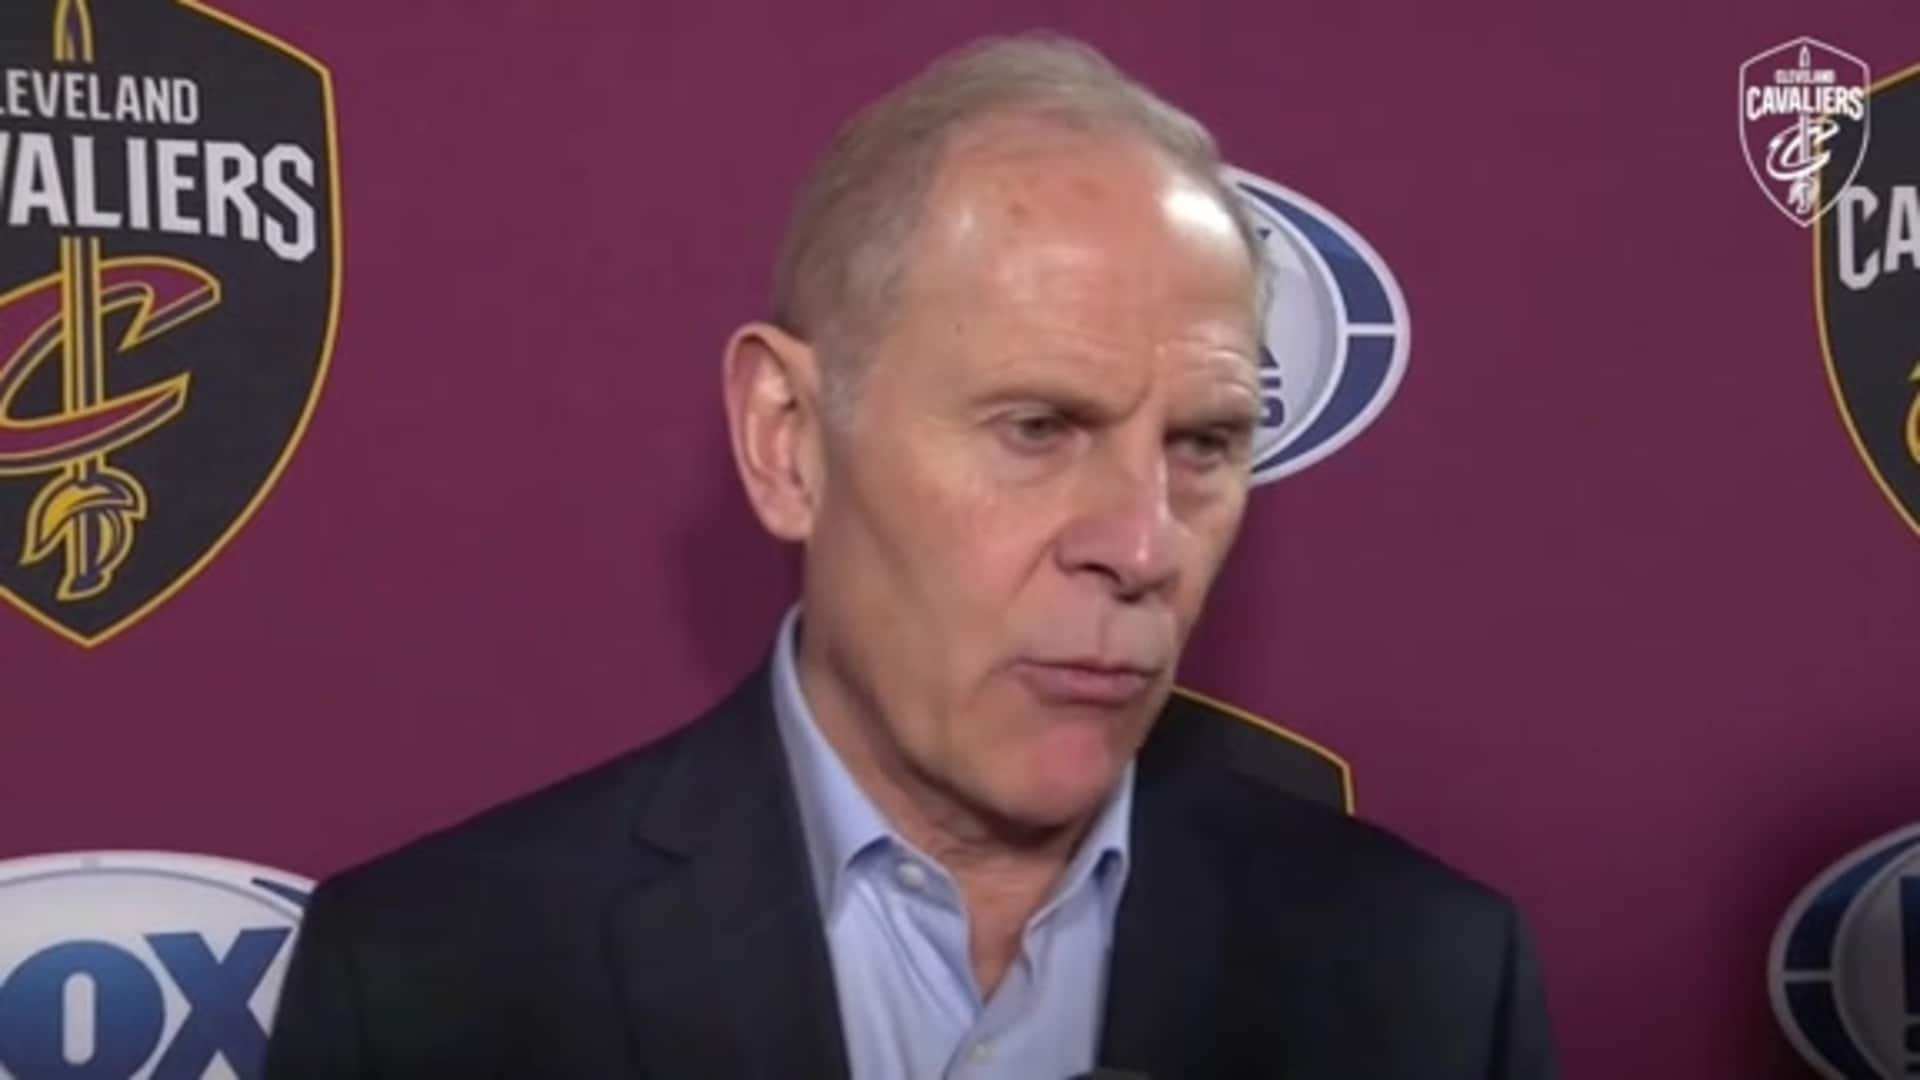 Cavs at Clippers Postgame: Coach Beilein